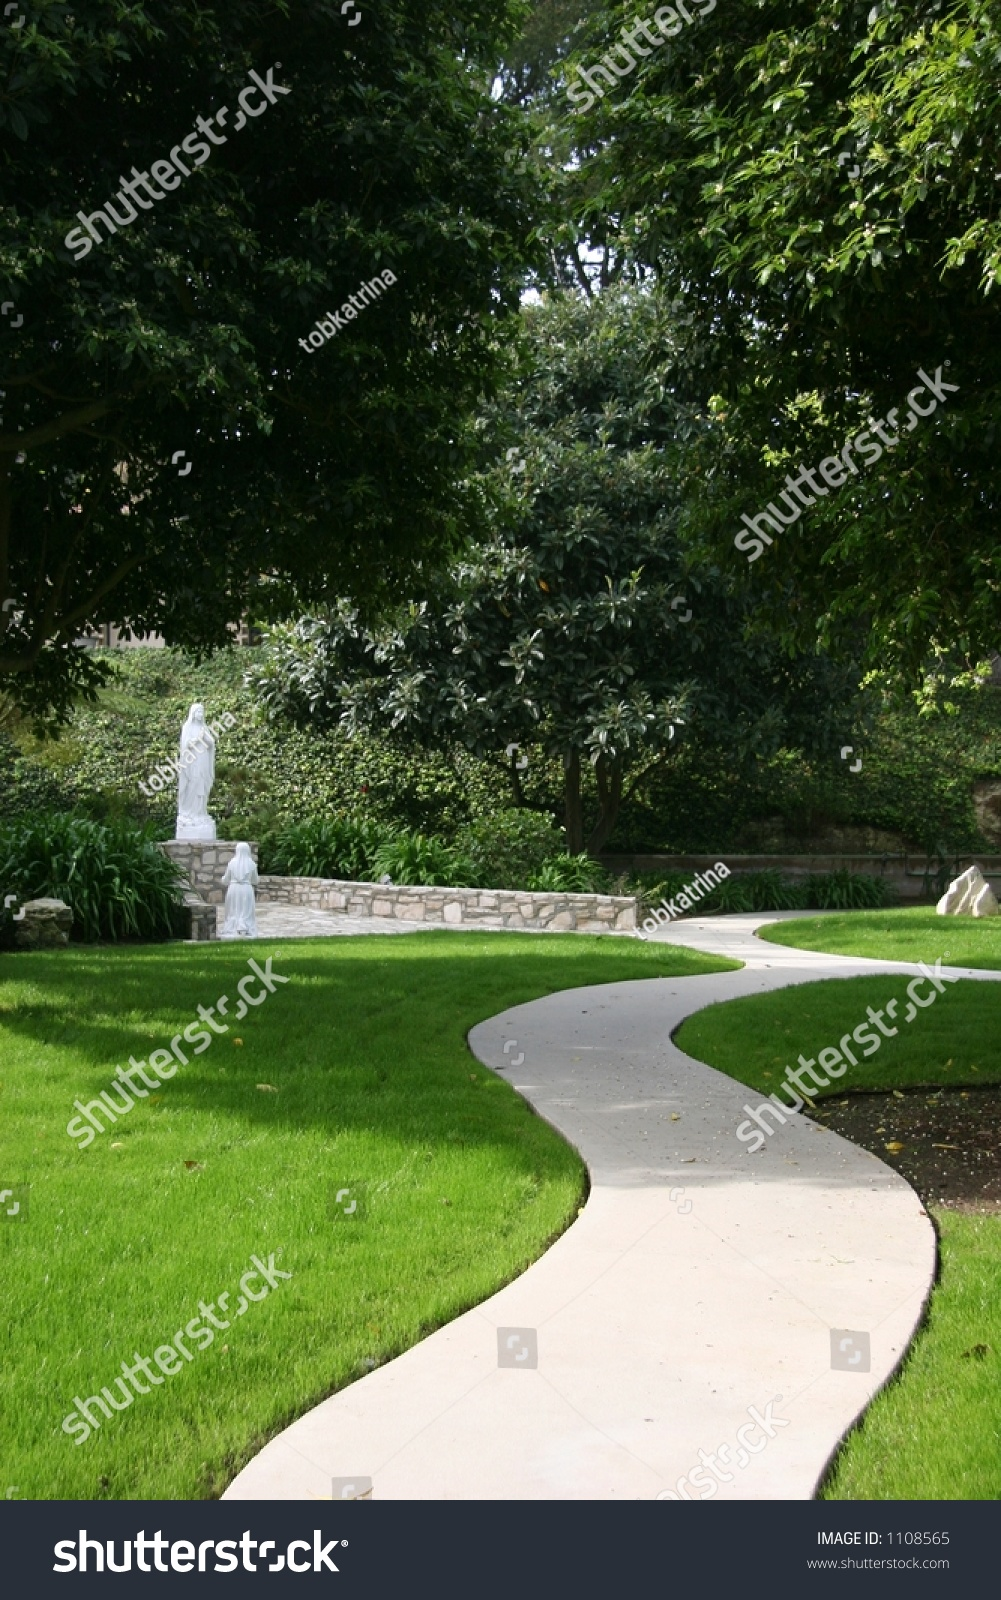 Wedding Special Occasion Landscape Scene Background Stock Photo 1108565 - Shutterstock